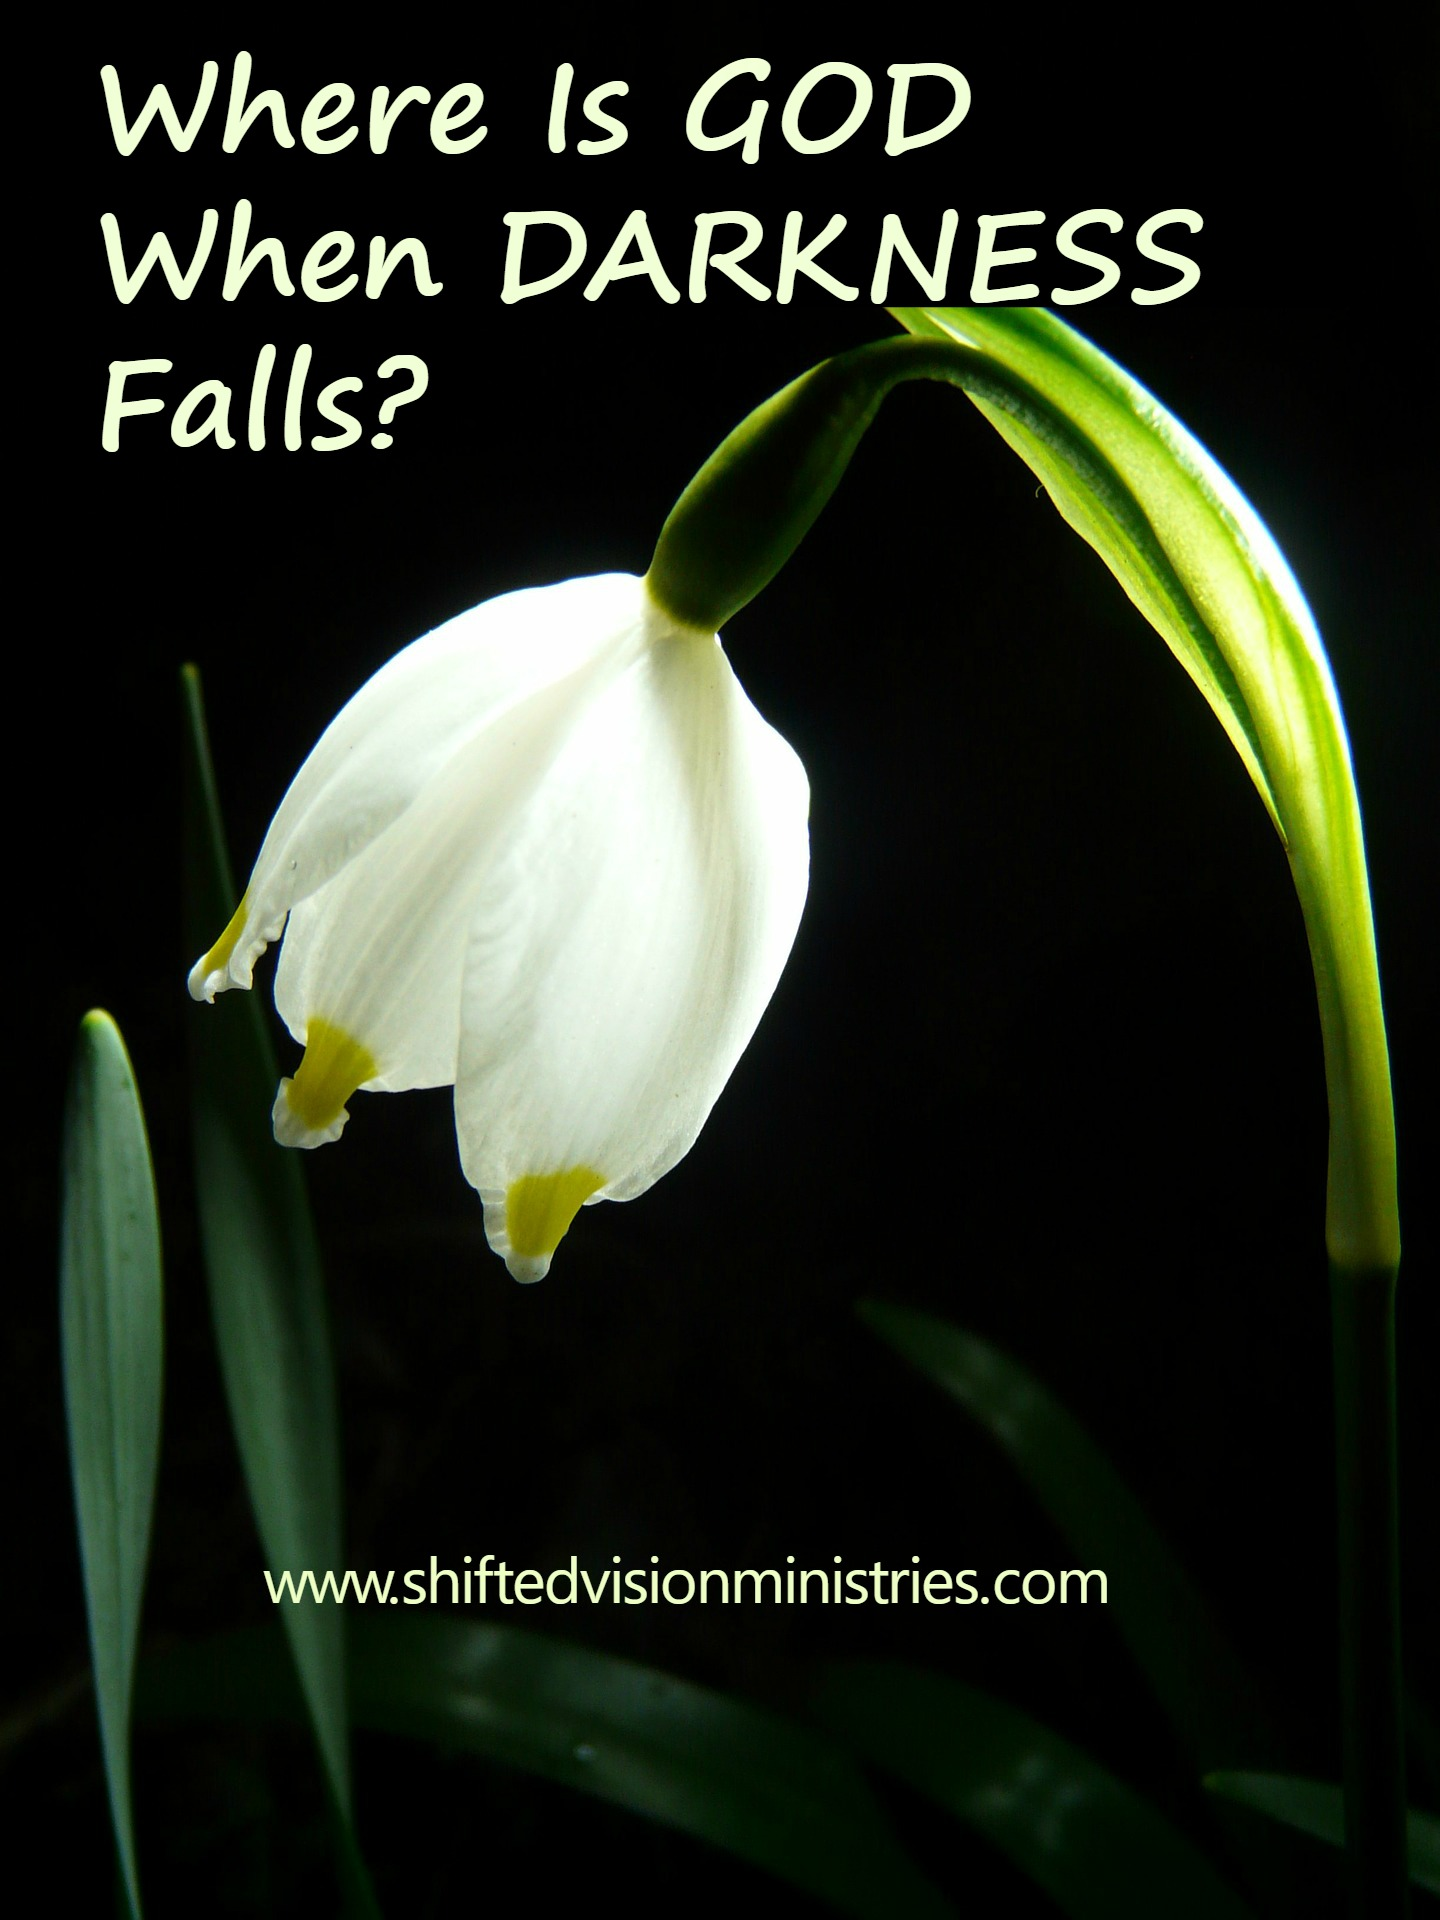 Where is God when Darkness Falls?